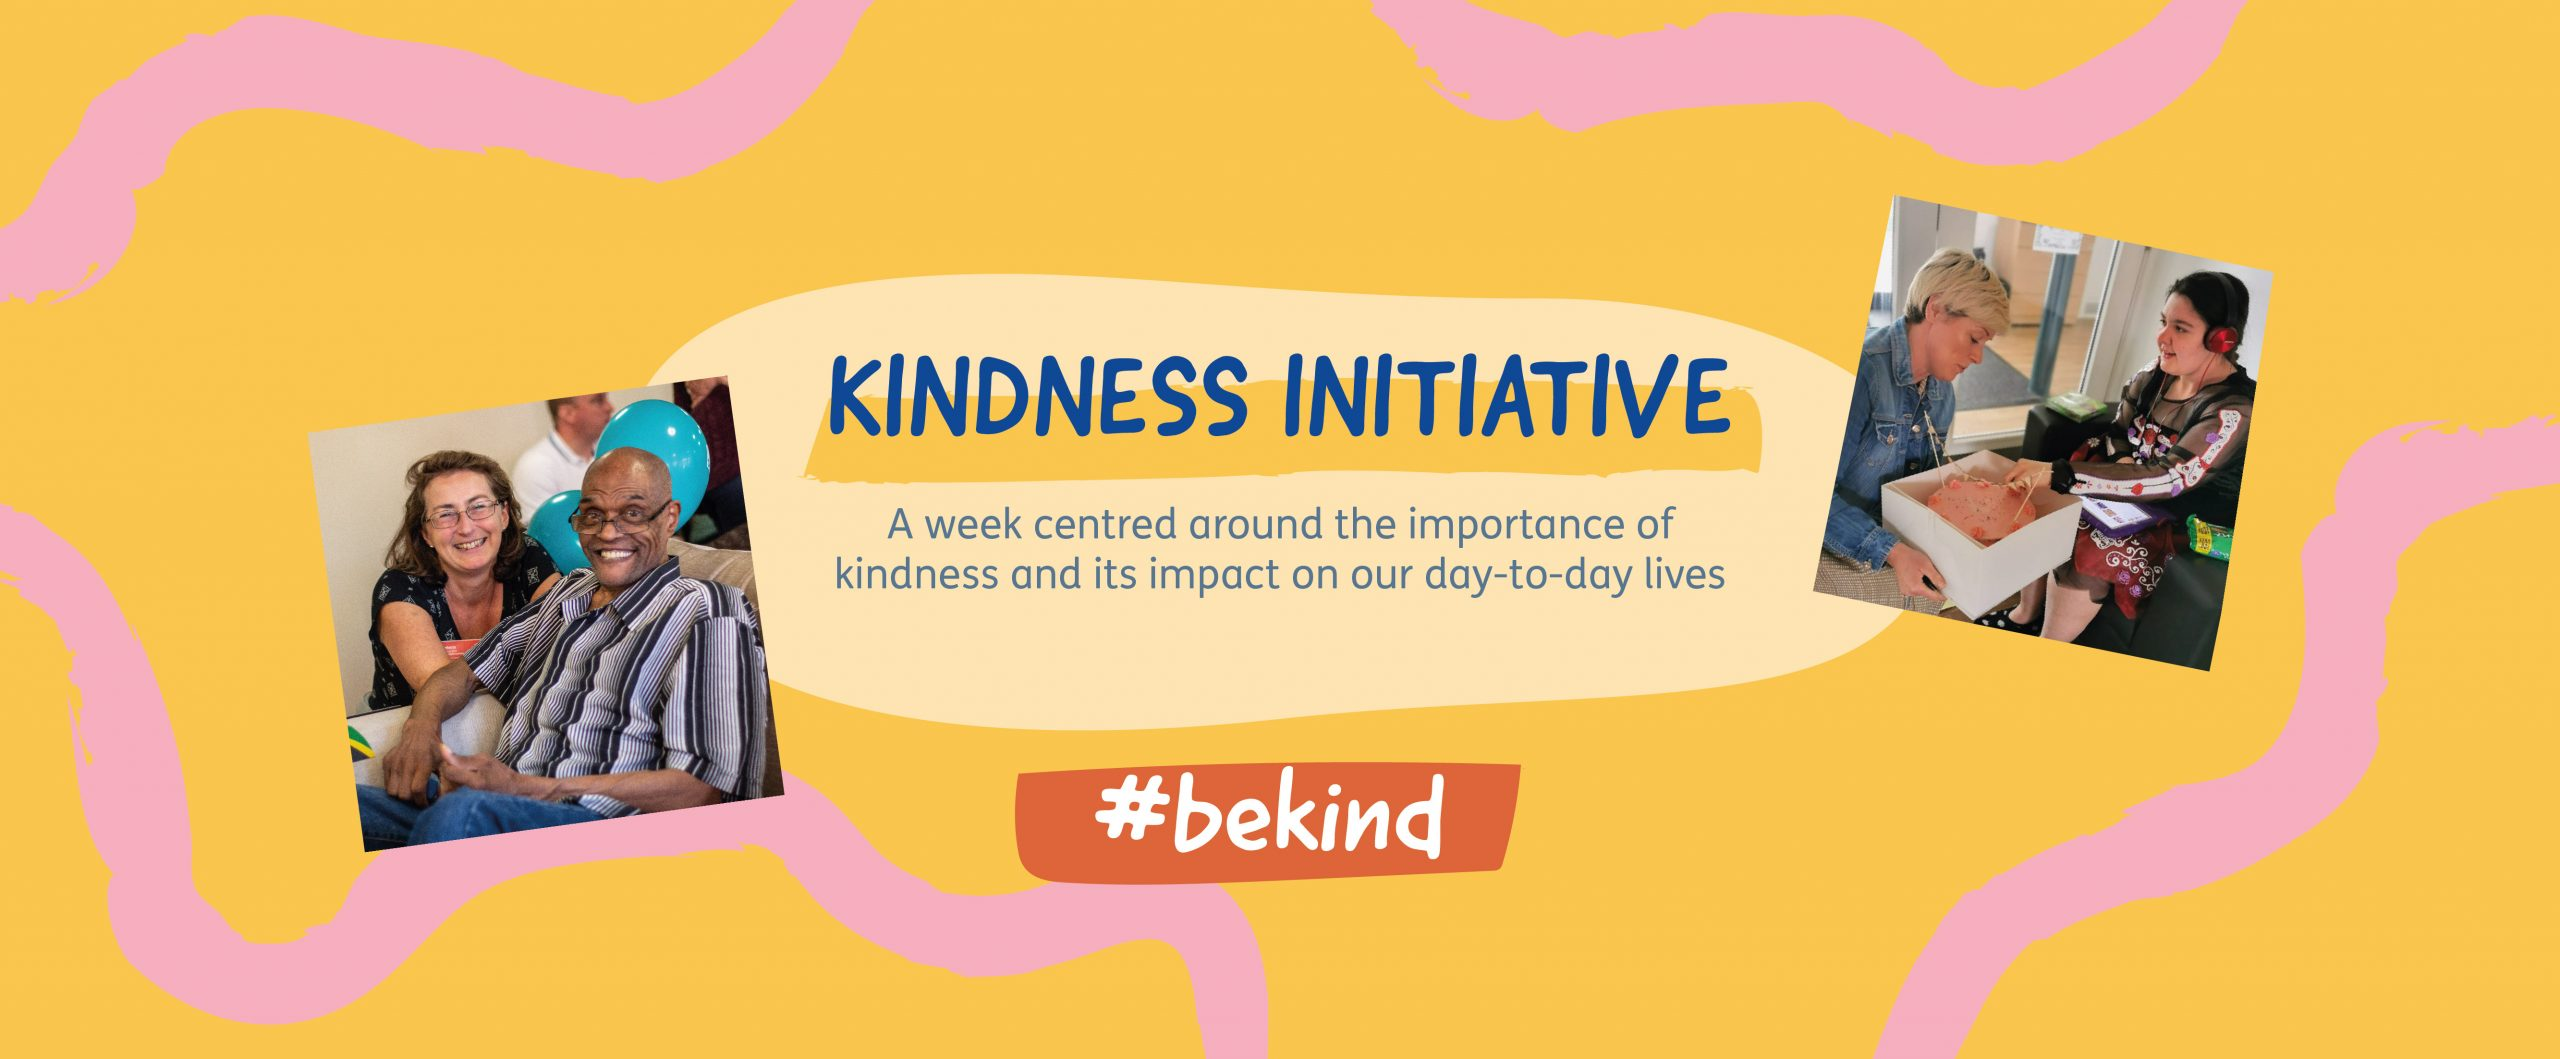 Introduction to our 'Kindness Initiative'/'Kindness Week'